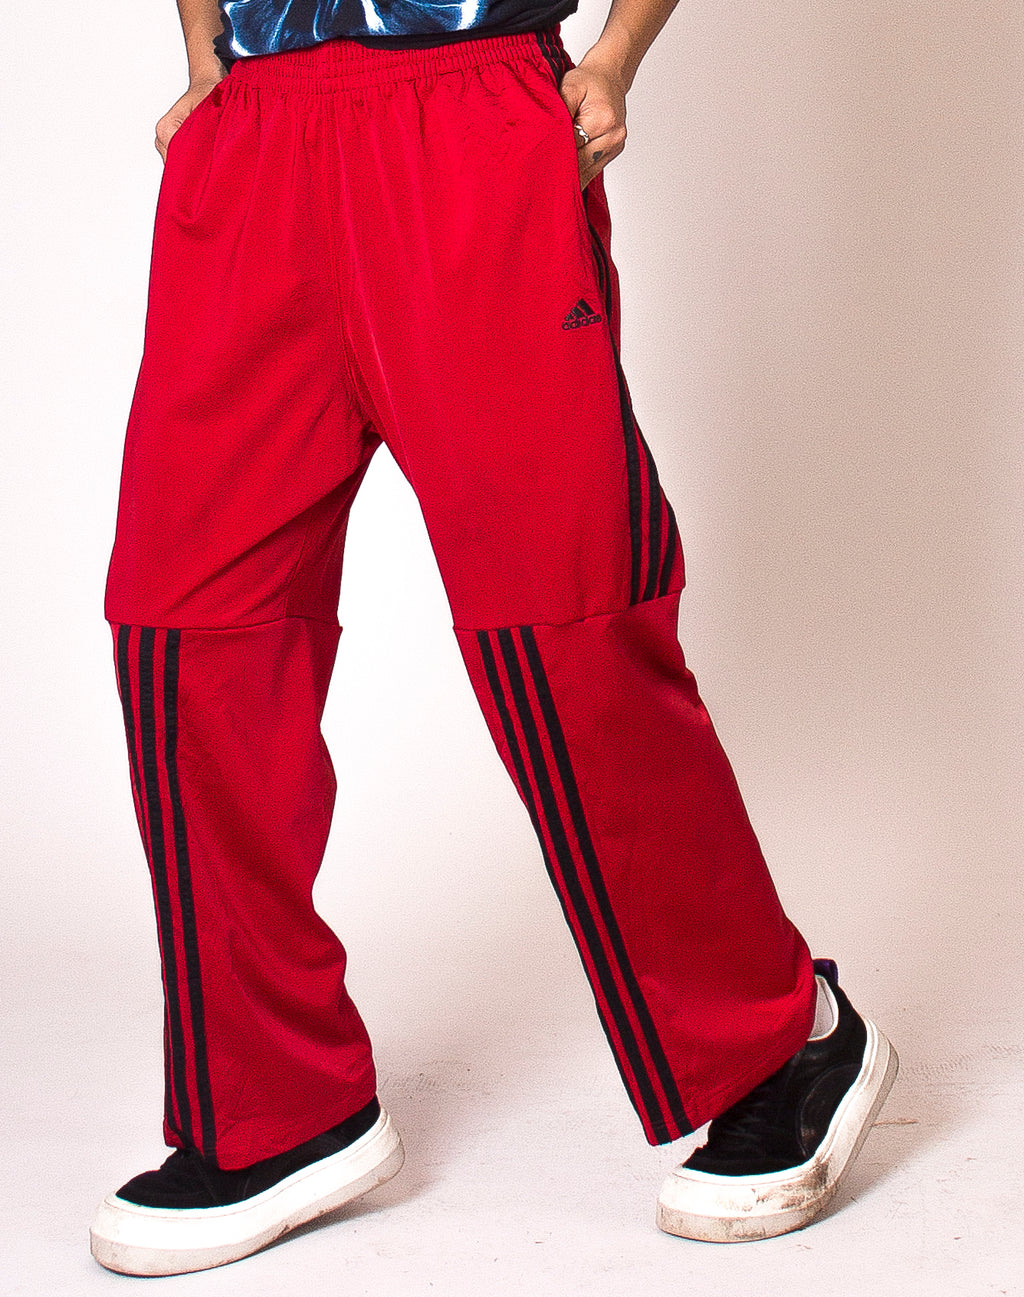 ADIDAS RED TWISTED TRACKIES